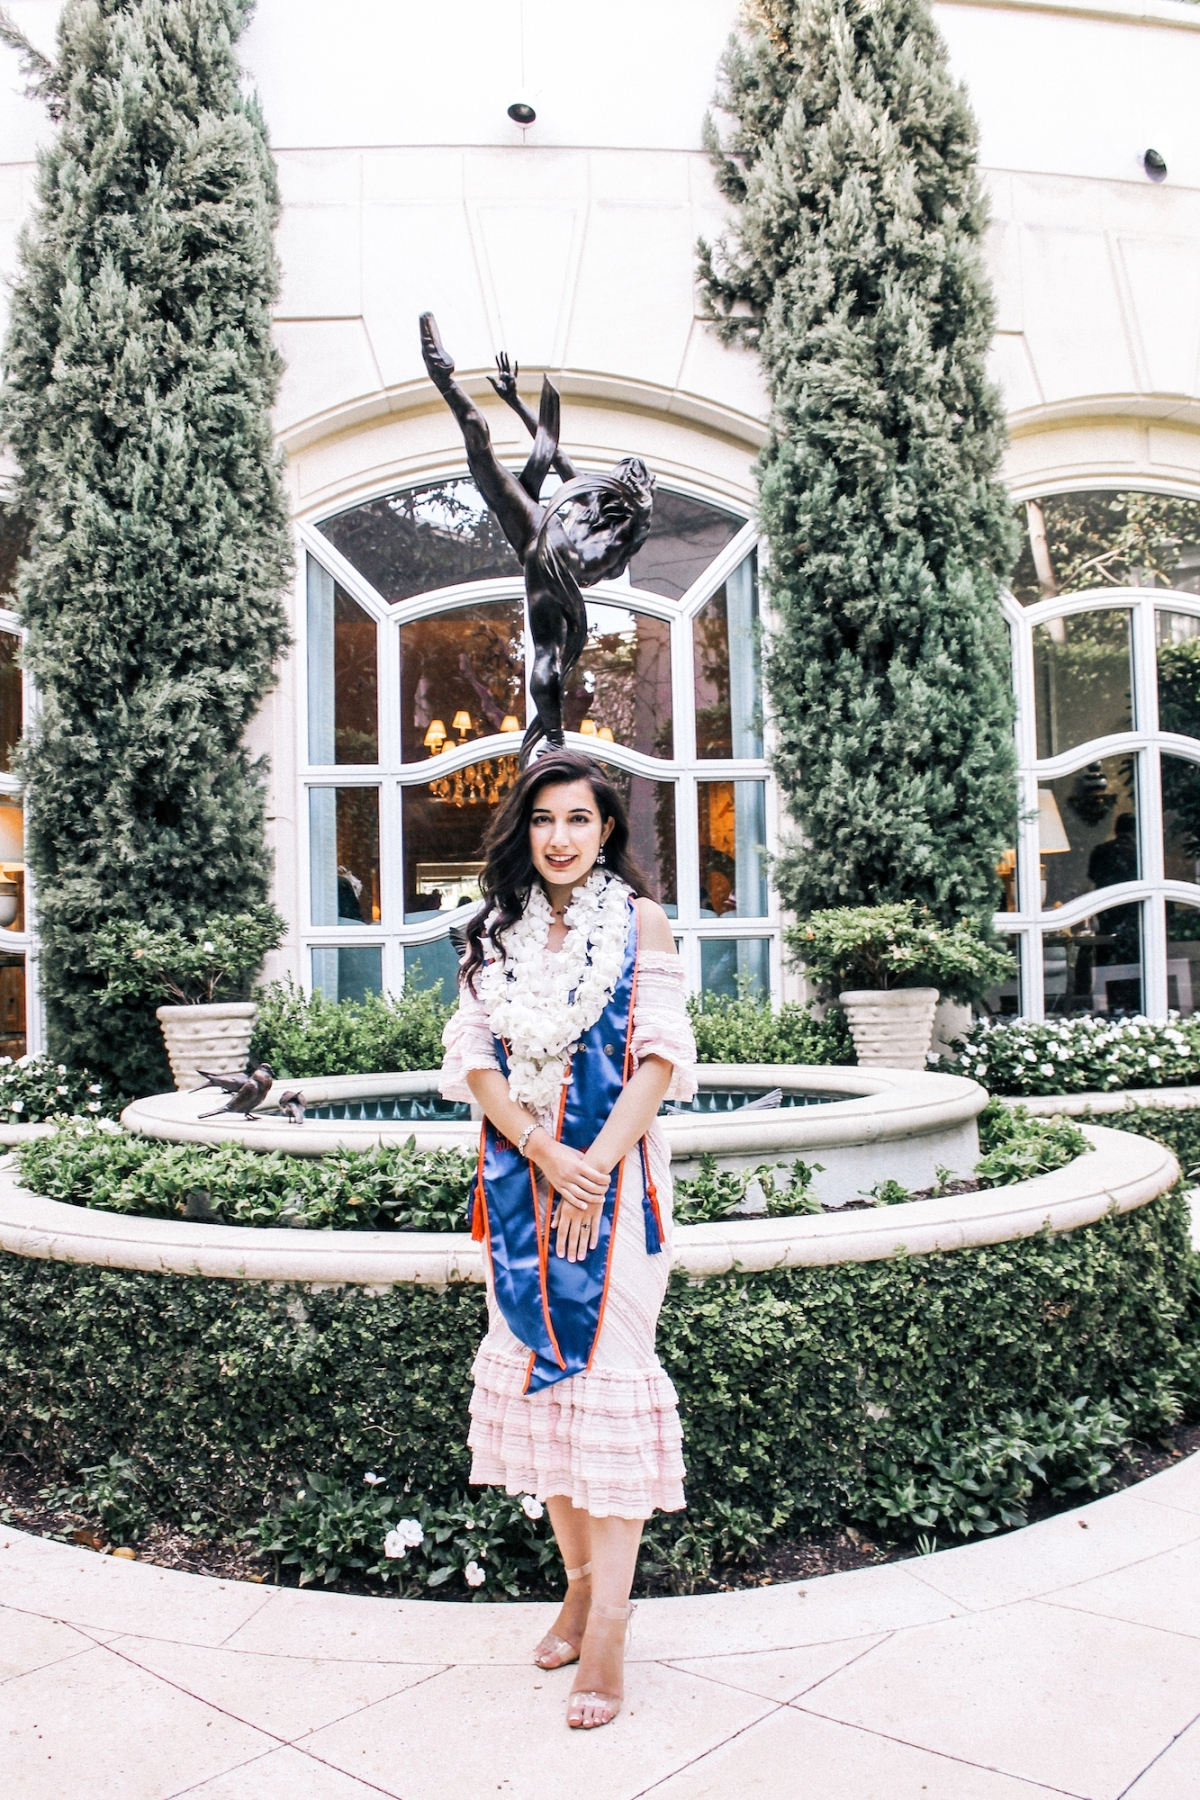 Cinq a Sept, lace dress, off the shoulder dress, Jeffrey Campbell, clear heels, high tea, The Living Room, fashion blogger, fashion, high fashion, spring fashion, lookbook, girly, feminine style, french style